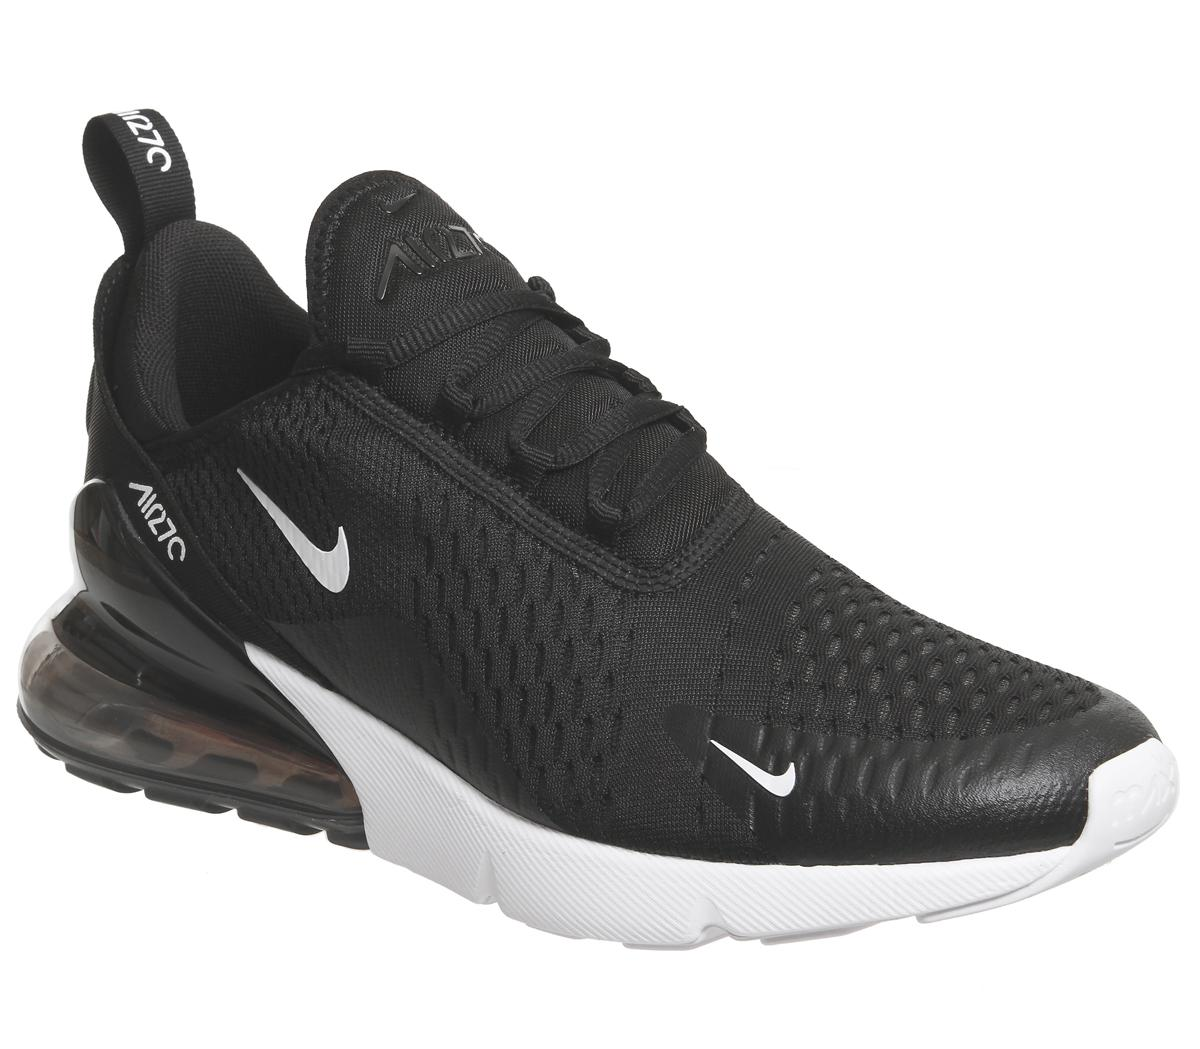 special sales buy best usa cheap sale Nike Air Max 270 Trainers Black White - His trainers